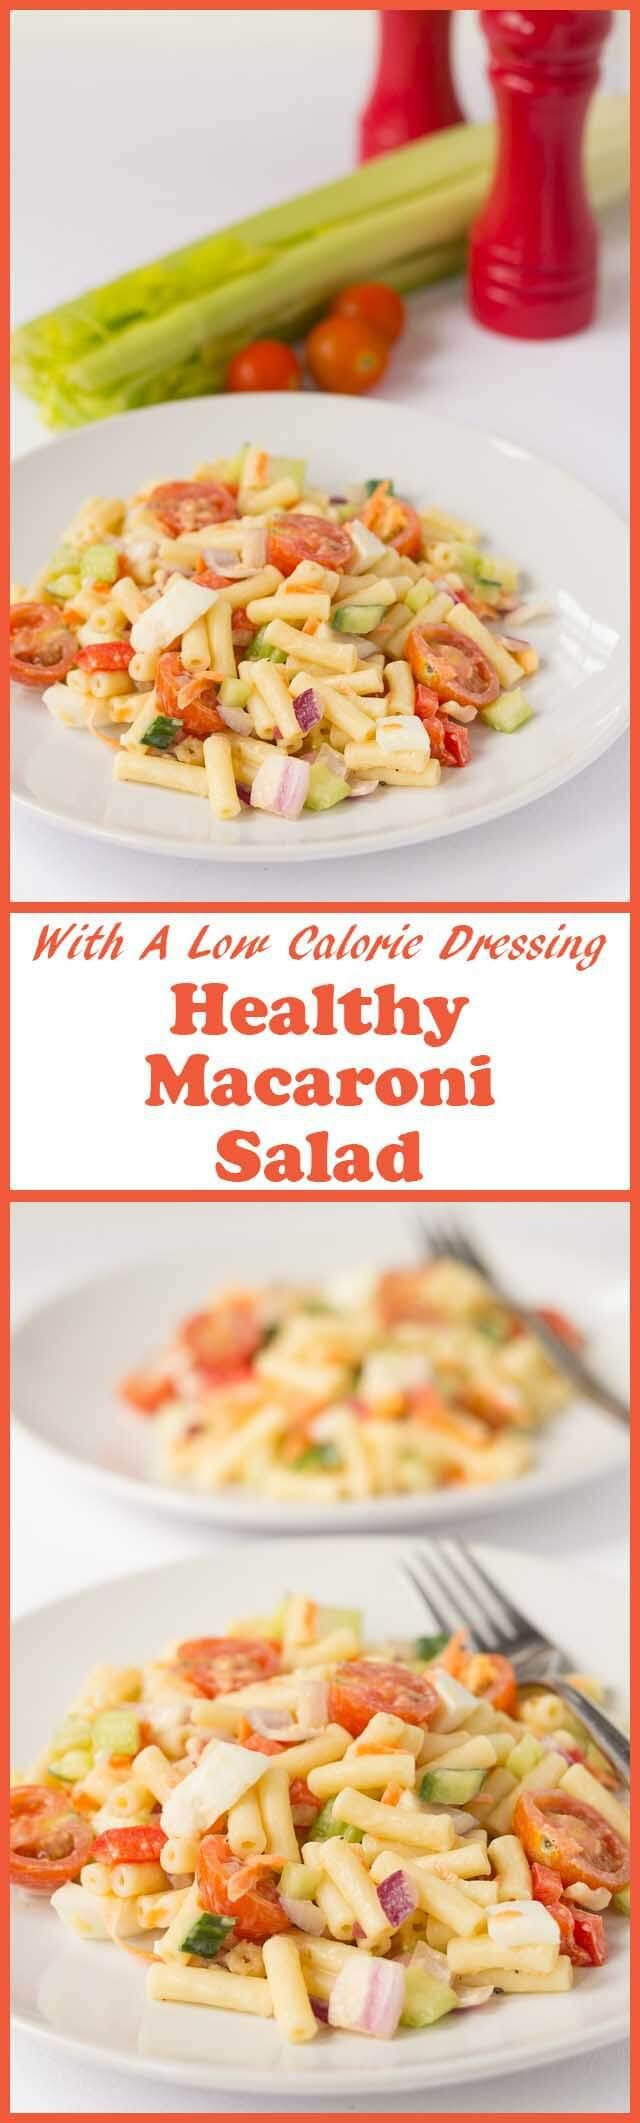 This healthy macaroni salad recipe has all the flavours and creaminess that you would expect from the classic salad but it's made with a lower calorie dressing. | Neil's Healthy Meals